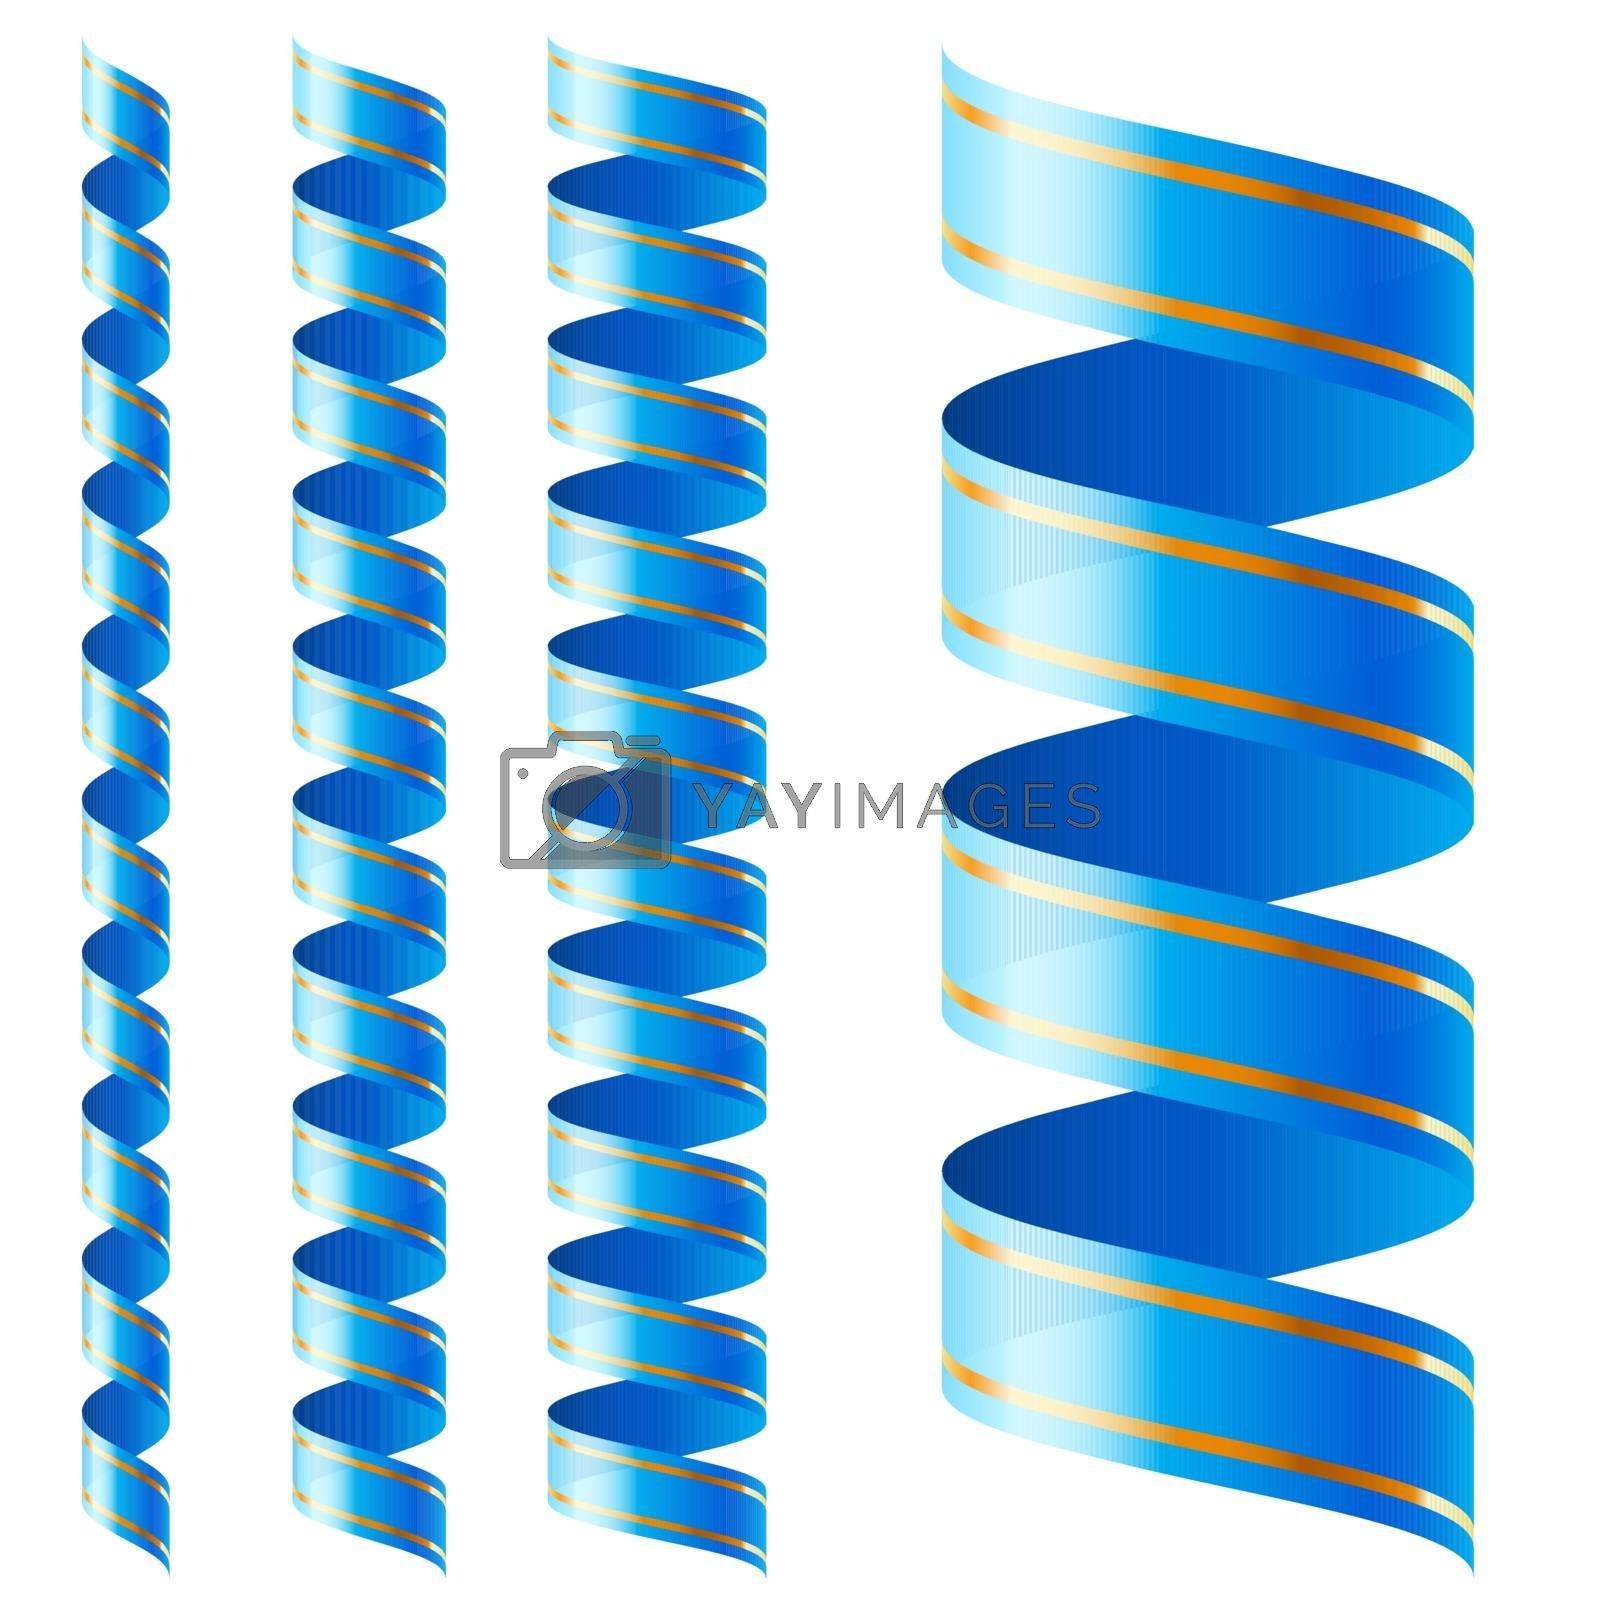 Vertical blue ribbon of different sizes on a white background